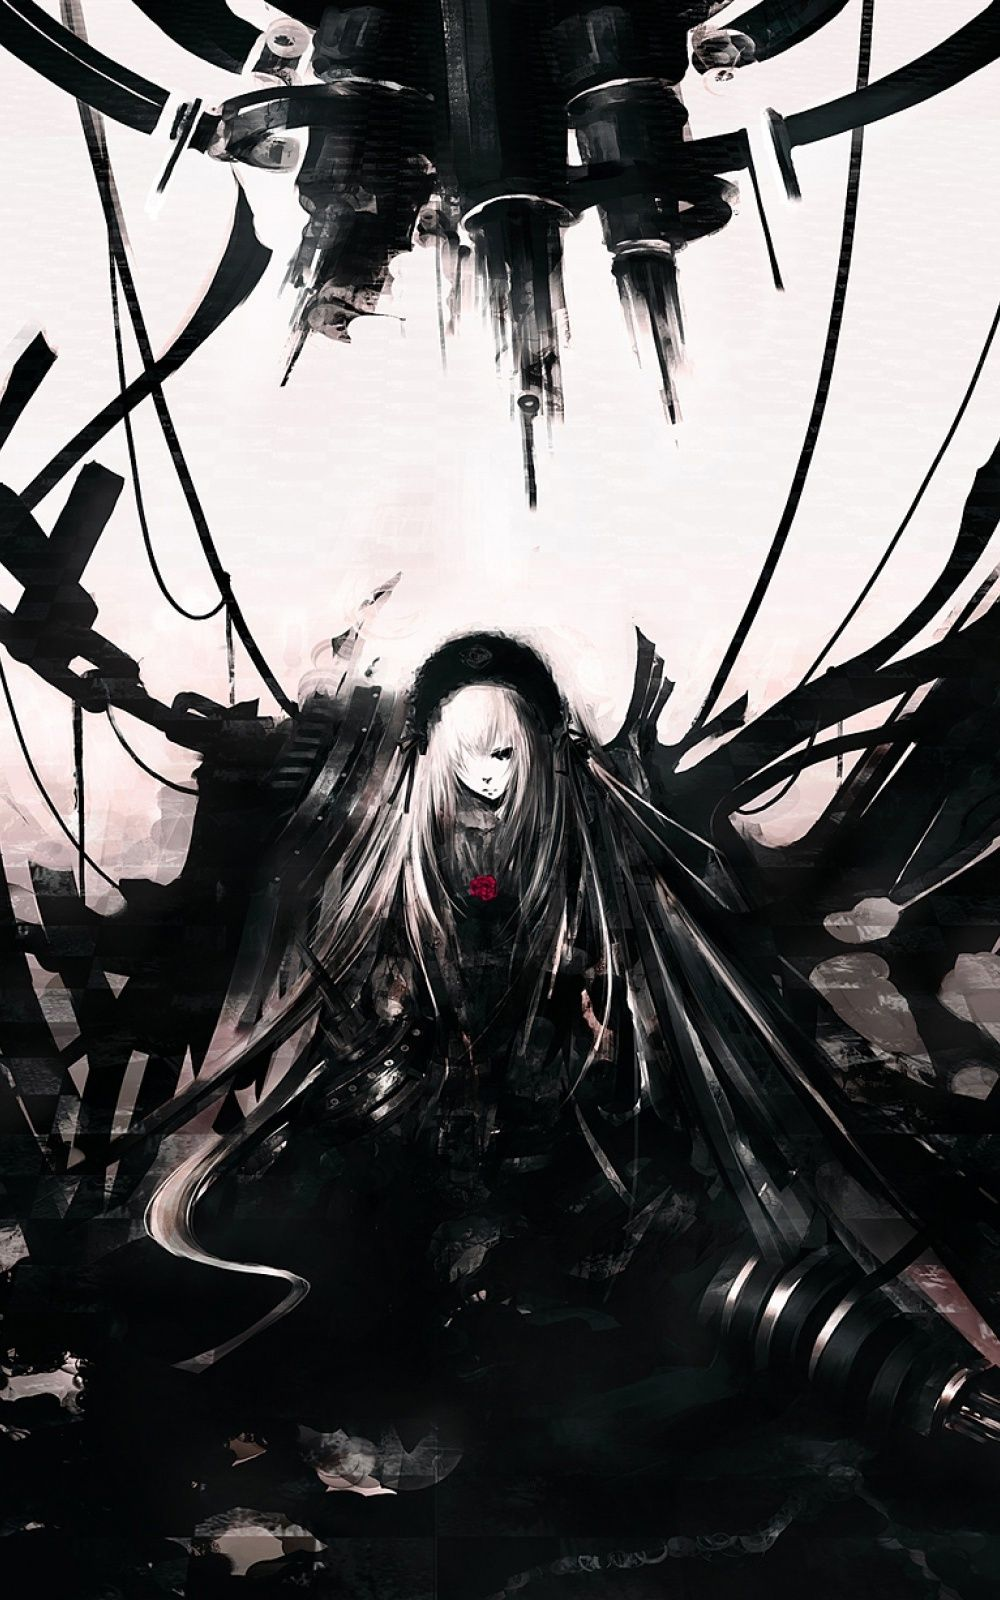 1000x1600 Dark Anime Woman Android Wallpaper free download